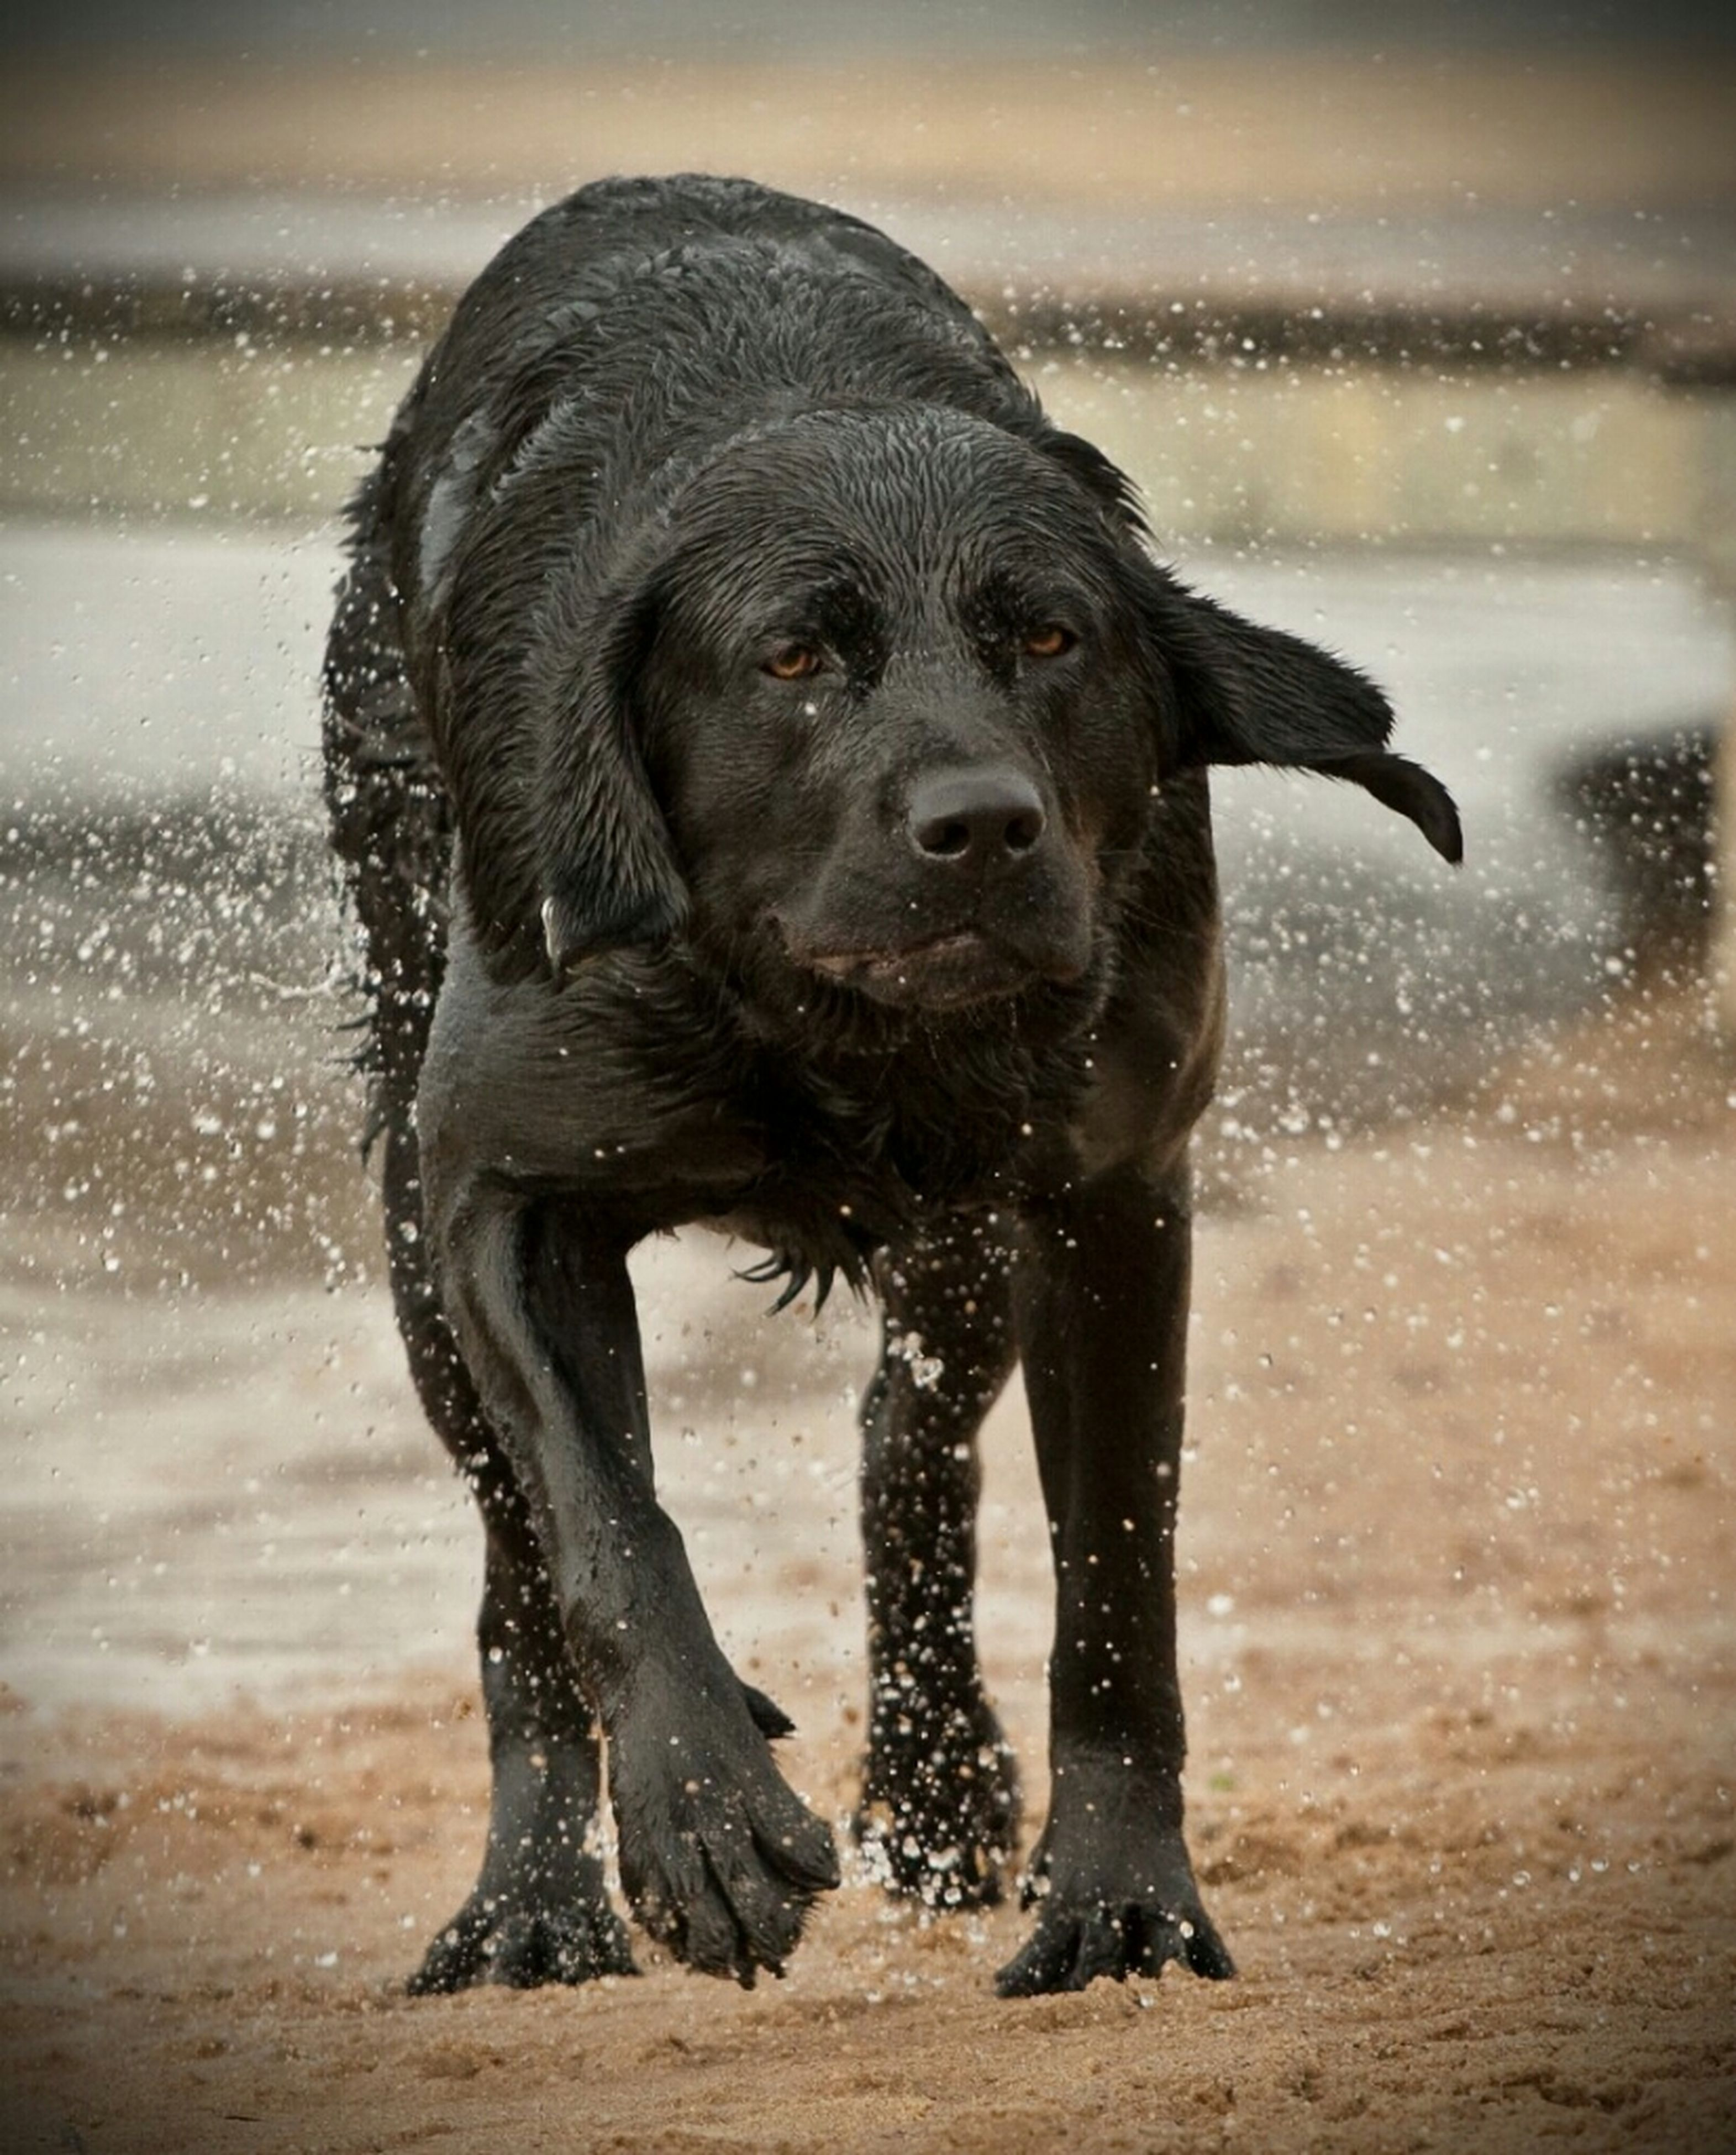 animal themes, one animal, water, mammal, wet, dog, standing, domestic animals, full length, focus on foreground, black color, nature, close-up, animals in the wild, front view, day, looking away, no people, zoology, portrait